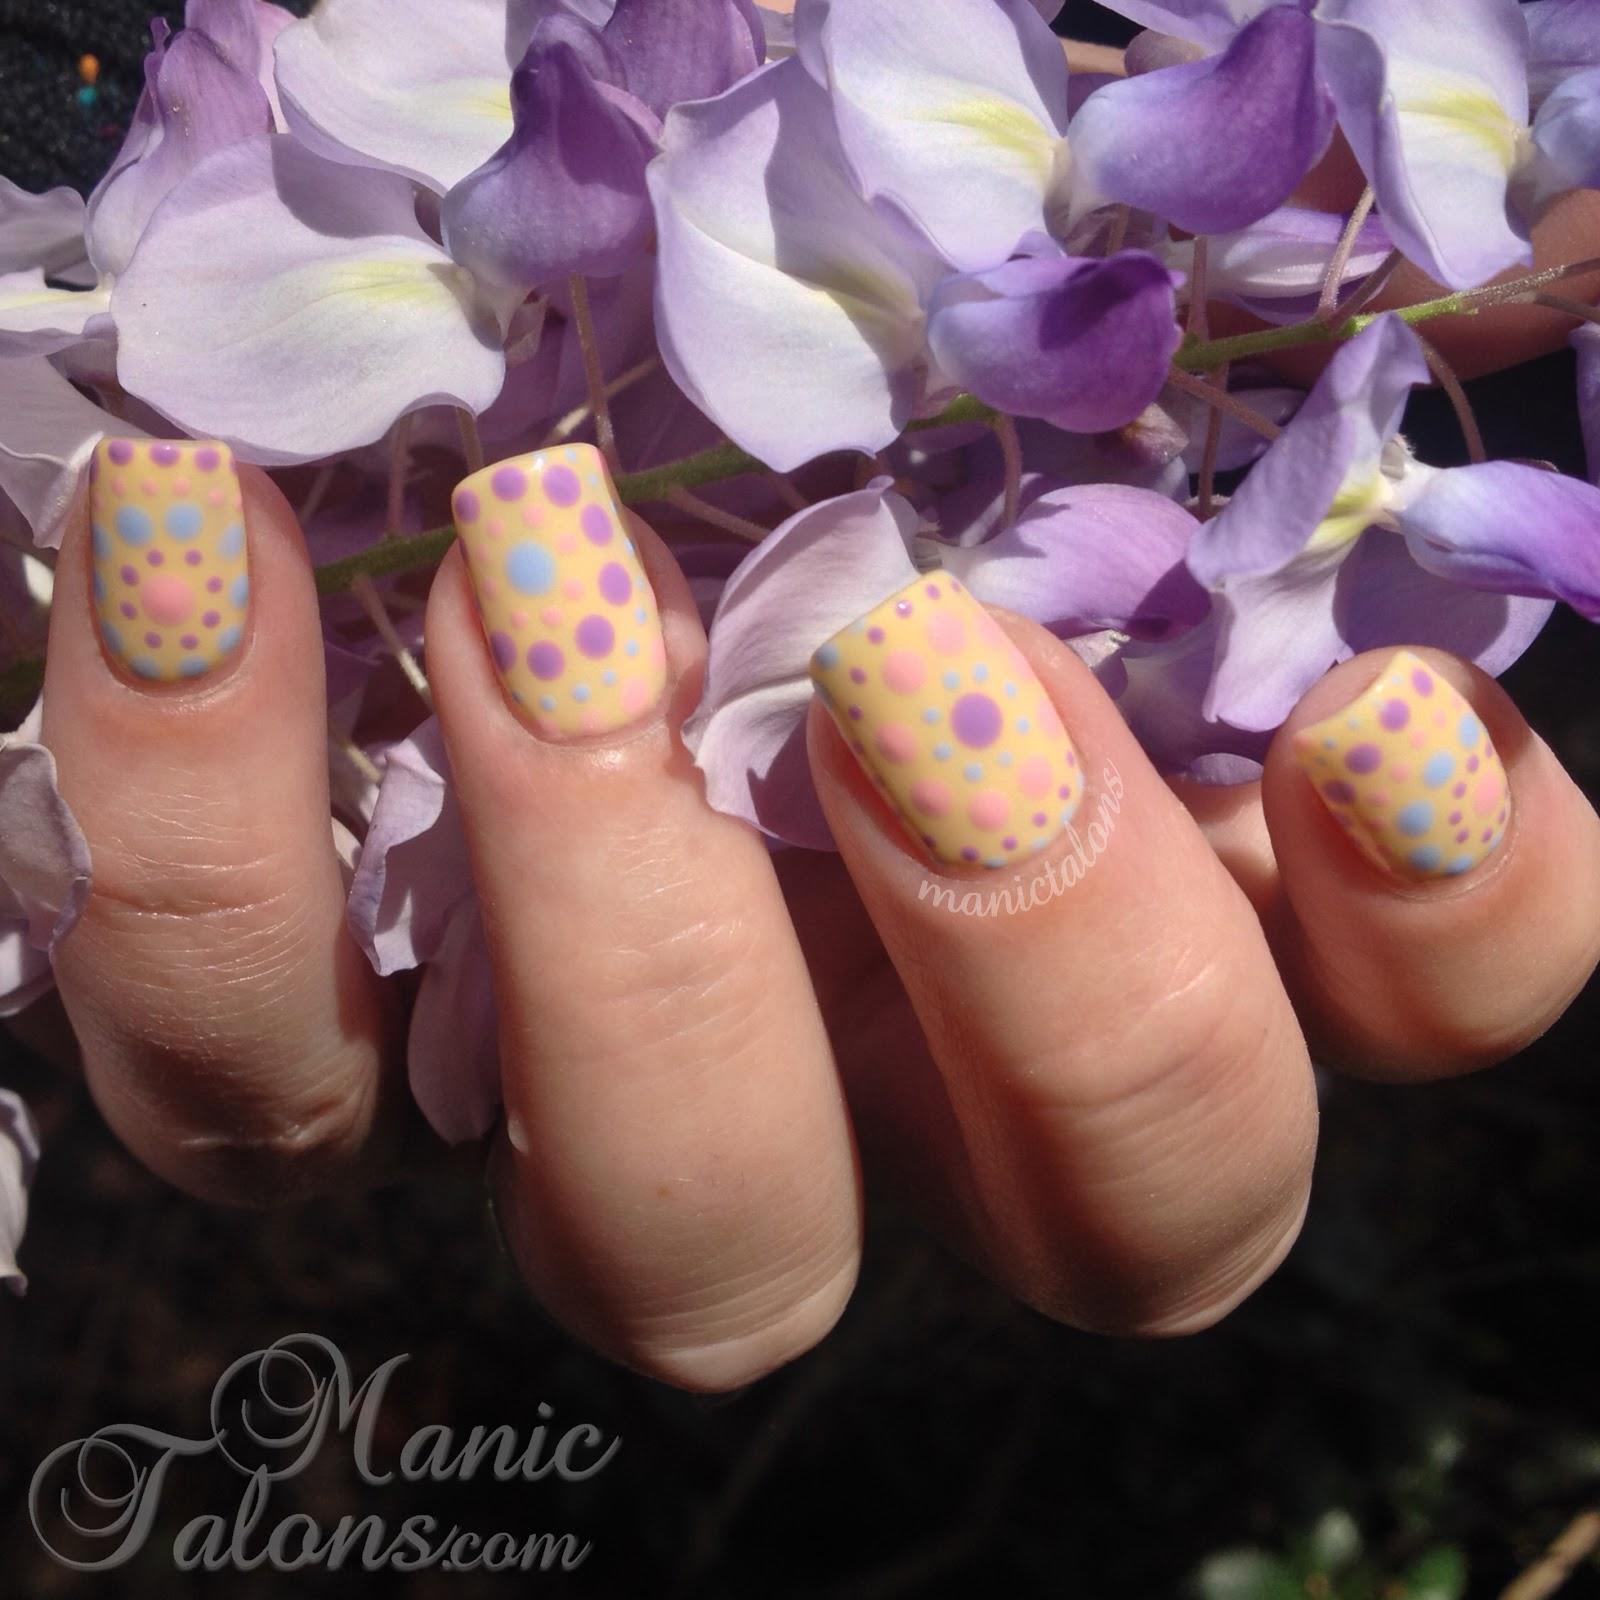 Manic Talons Nail Design: Pastel Dots for Spring with LeChat Perfect ...